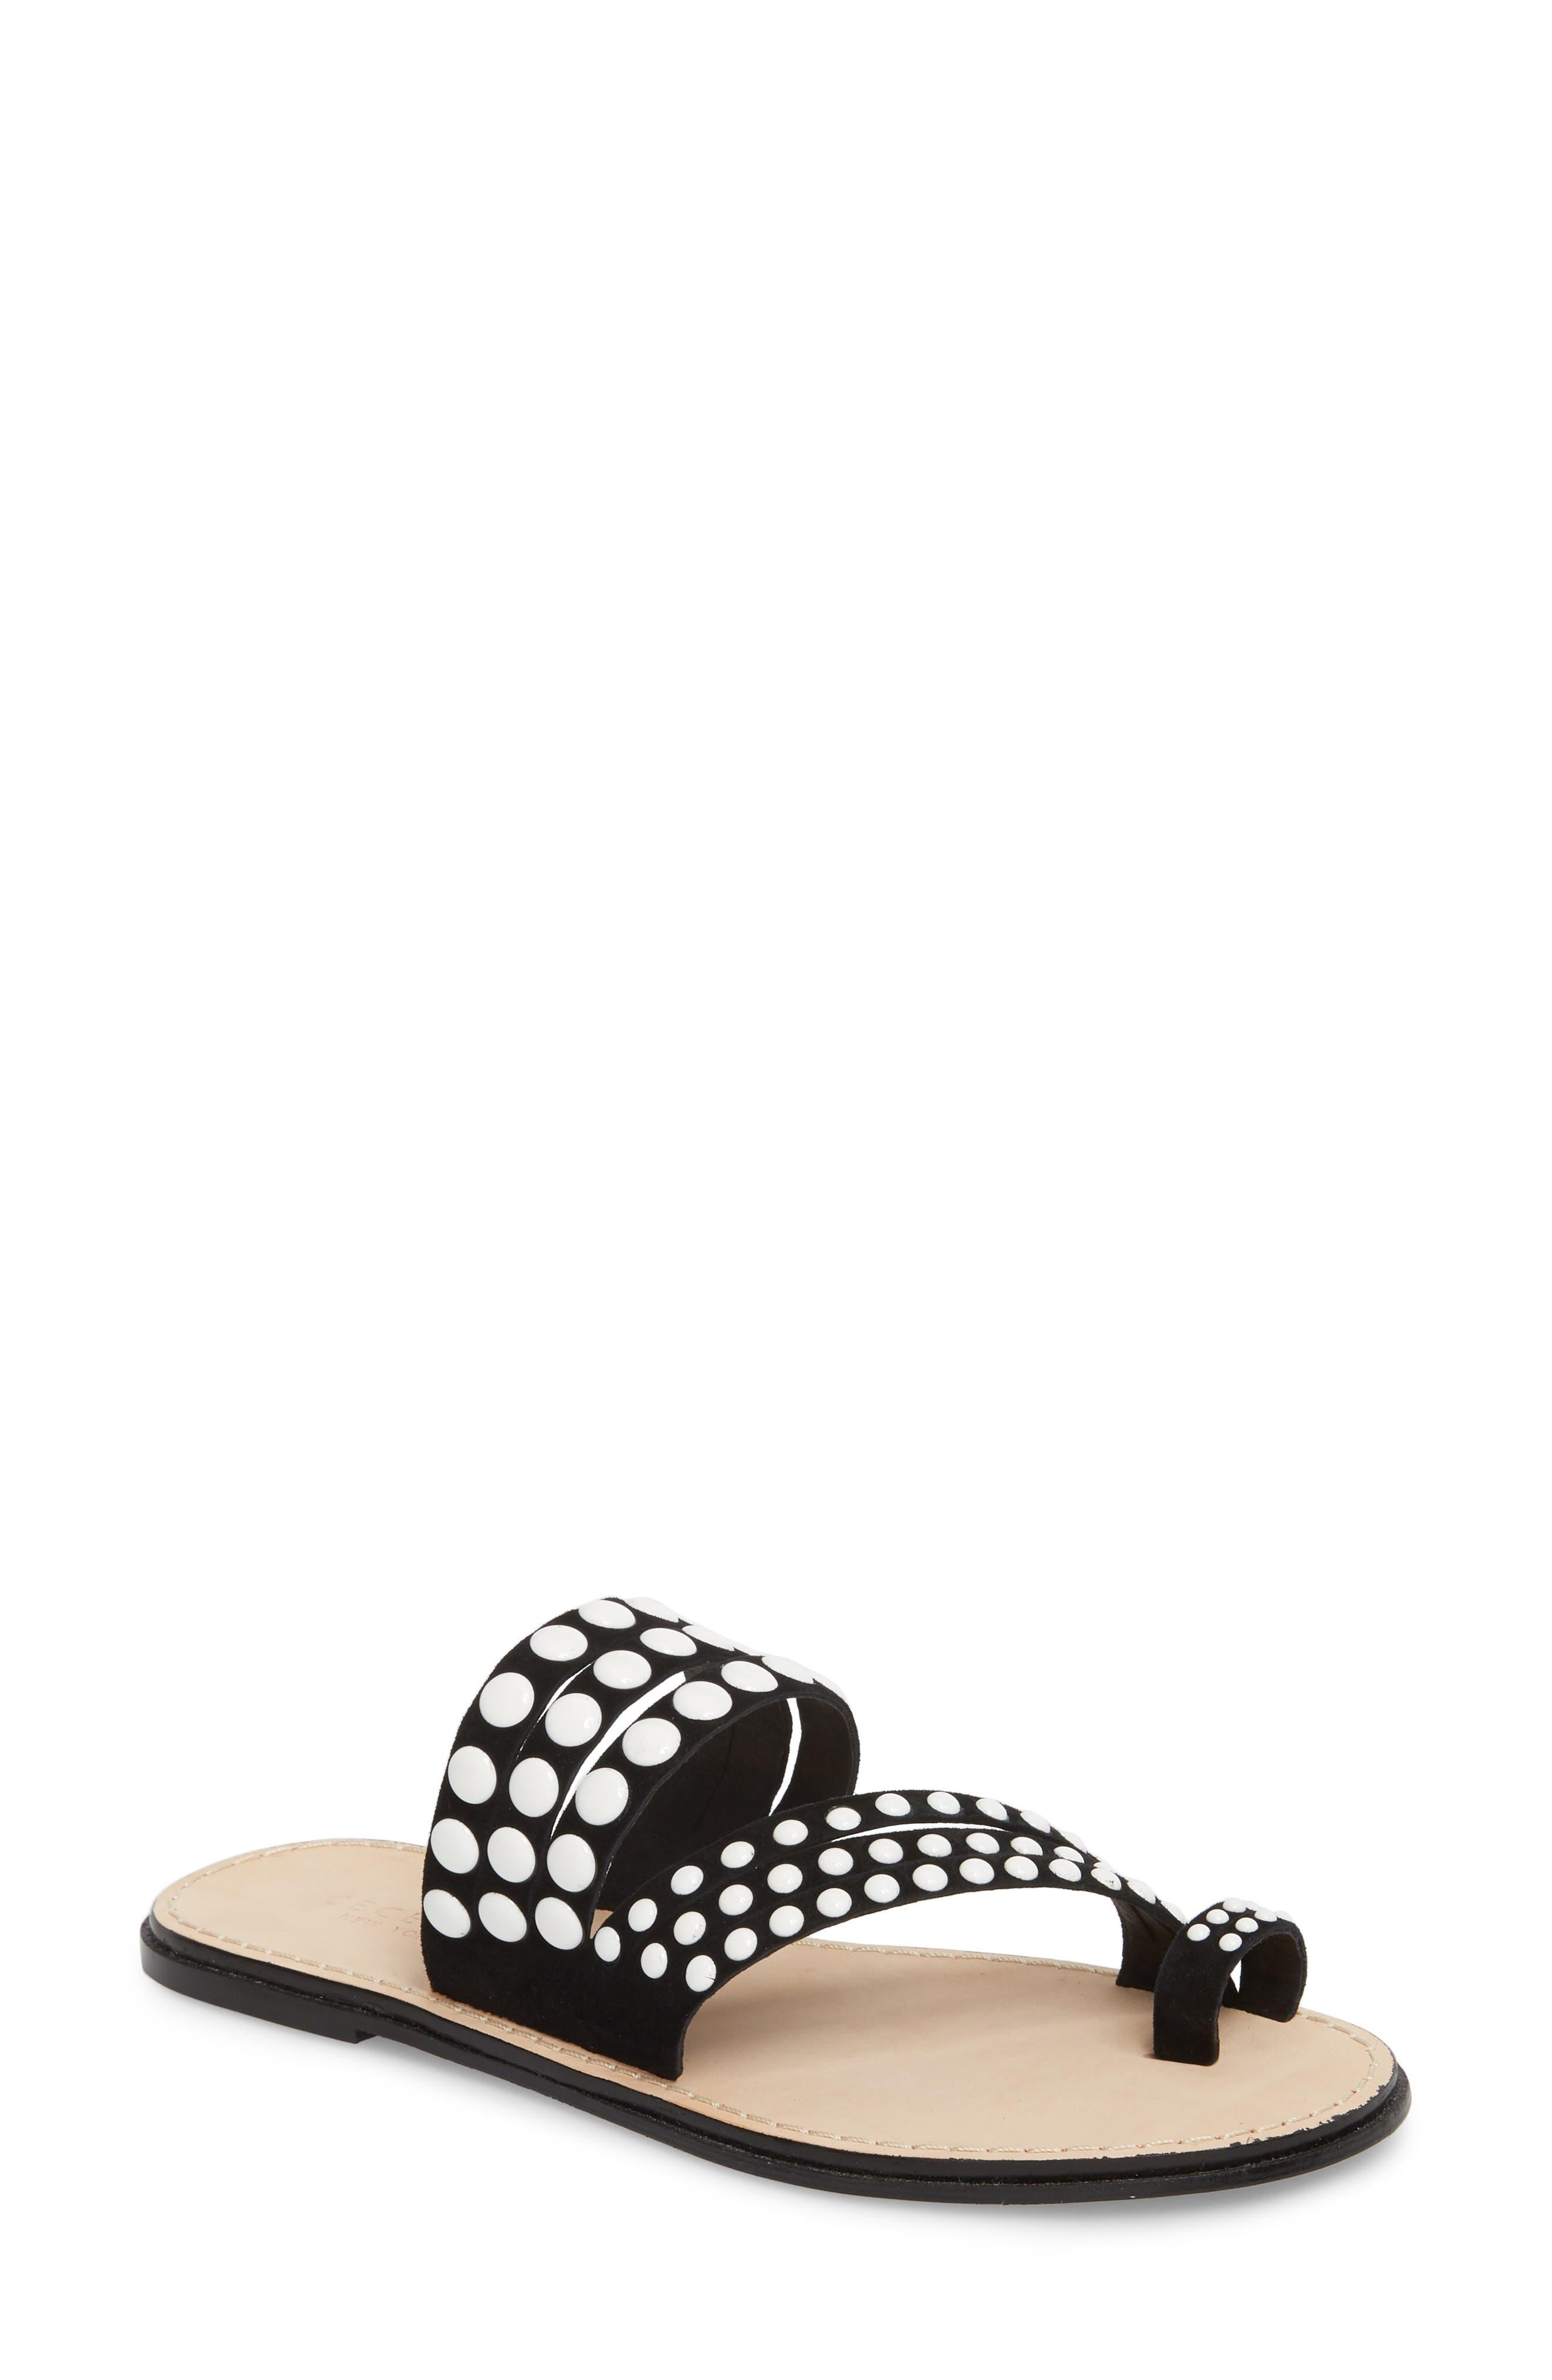 Pezz Studded Sandal,                         Main,                         color, Black Suede